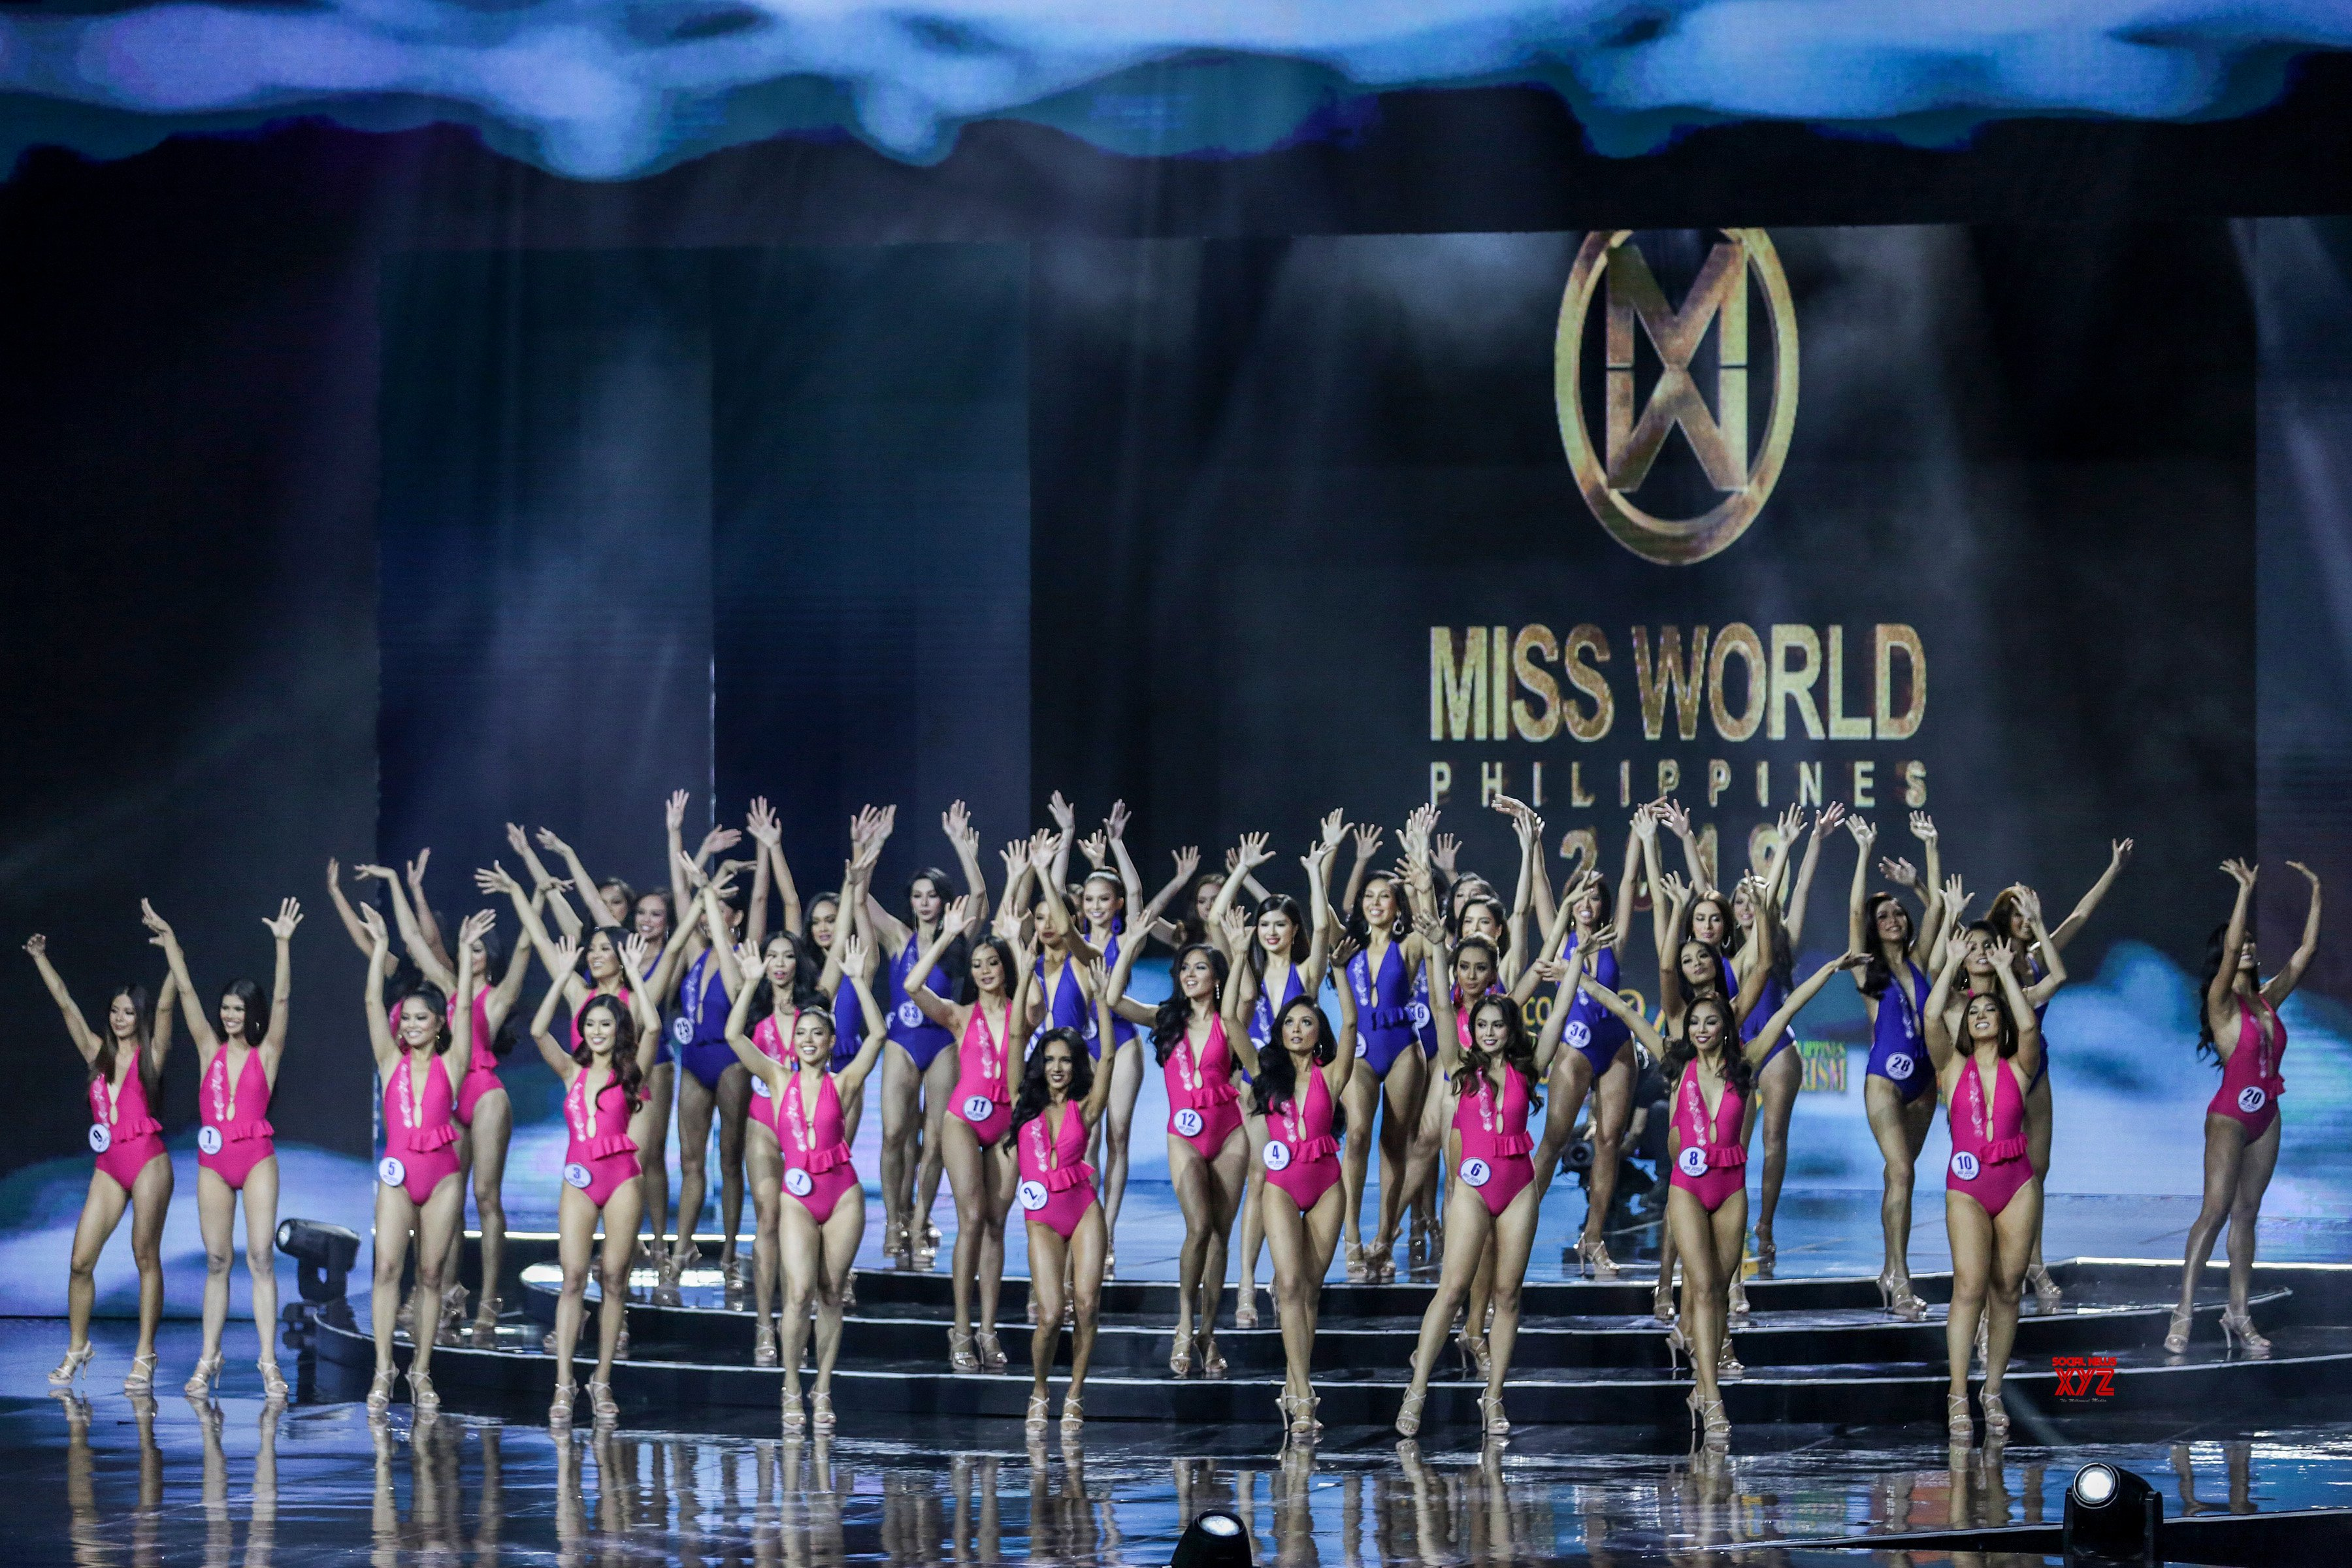 PHILIPPINES - QUEZON CITY - MISS WORLD - PHILIPPINES 2019 - CORONATION NIGHT #Gallery